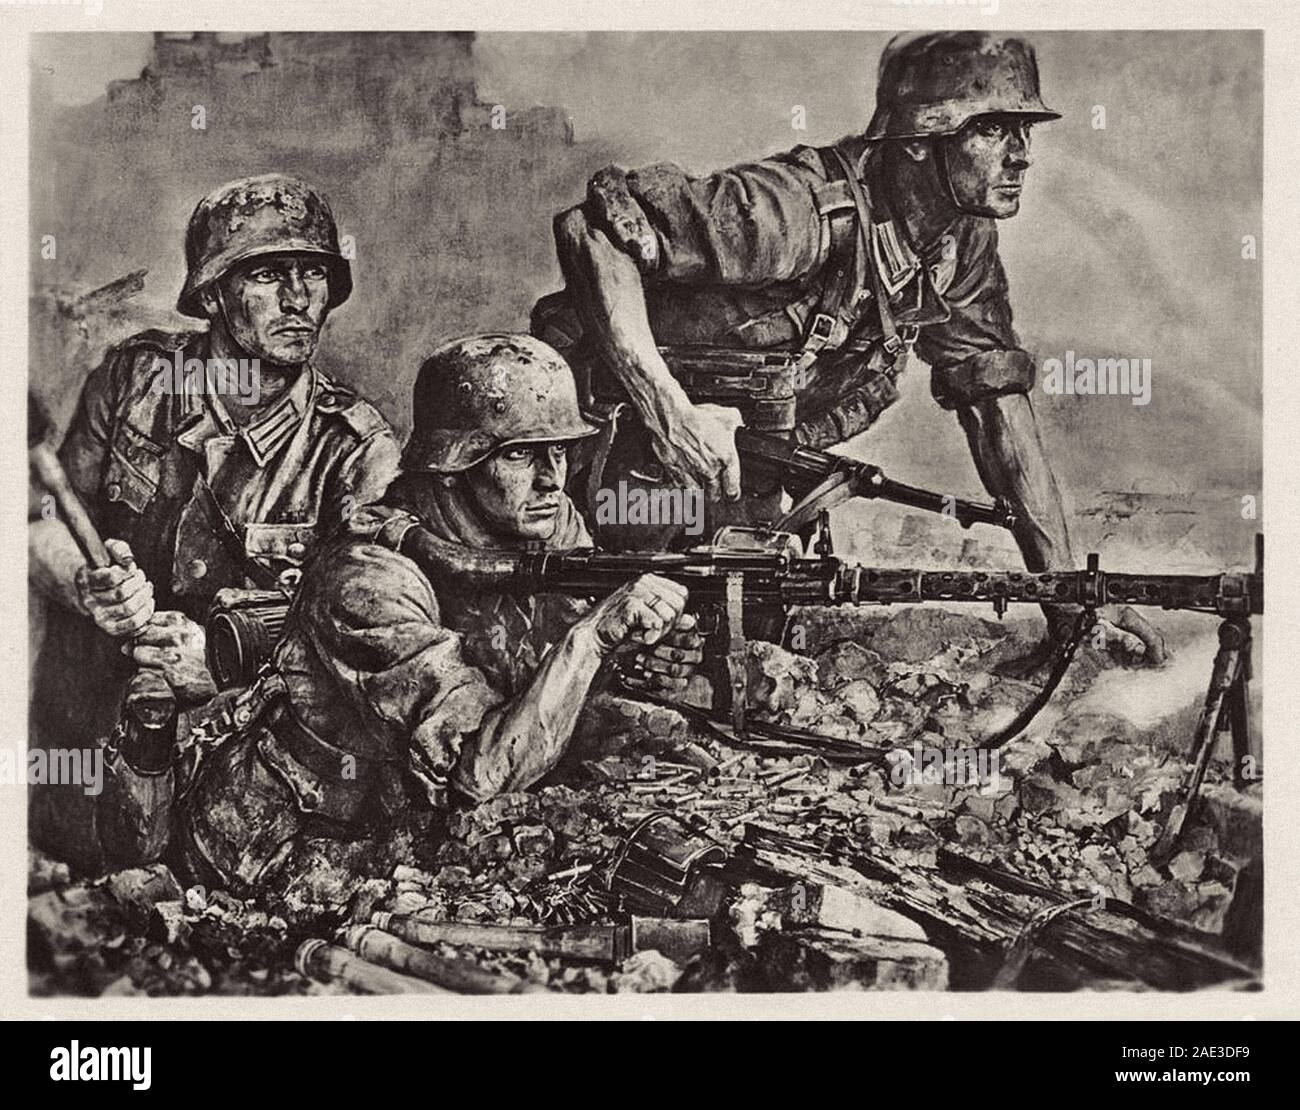 German soldiers during invasion of France. Nazi German postcard by Wilhelm Sauter, 1940s Stock Photo